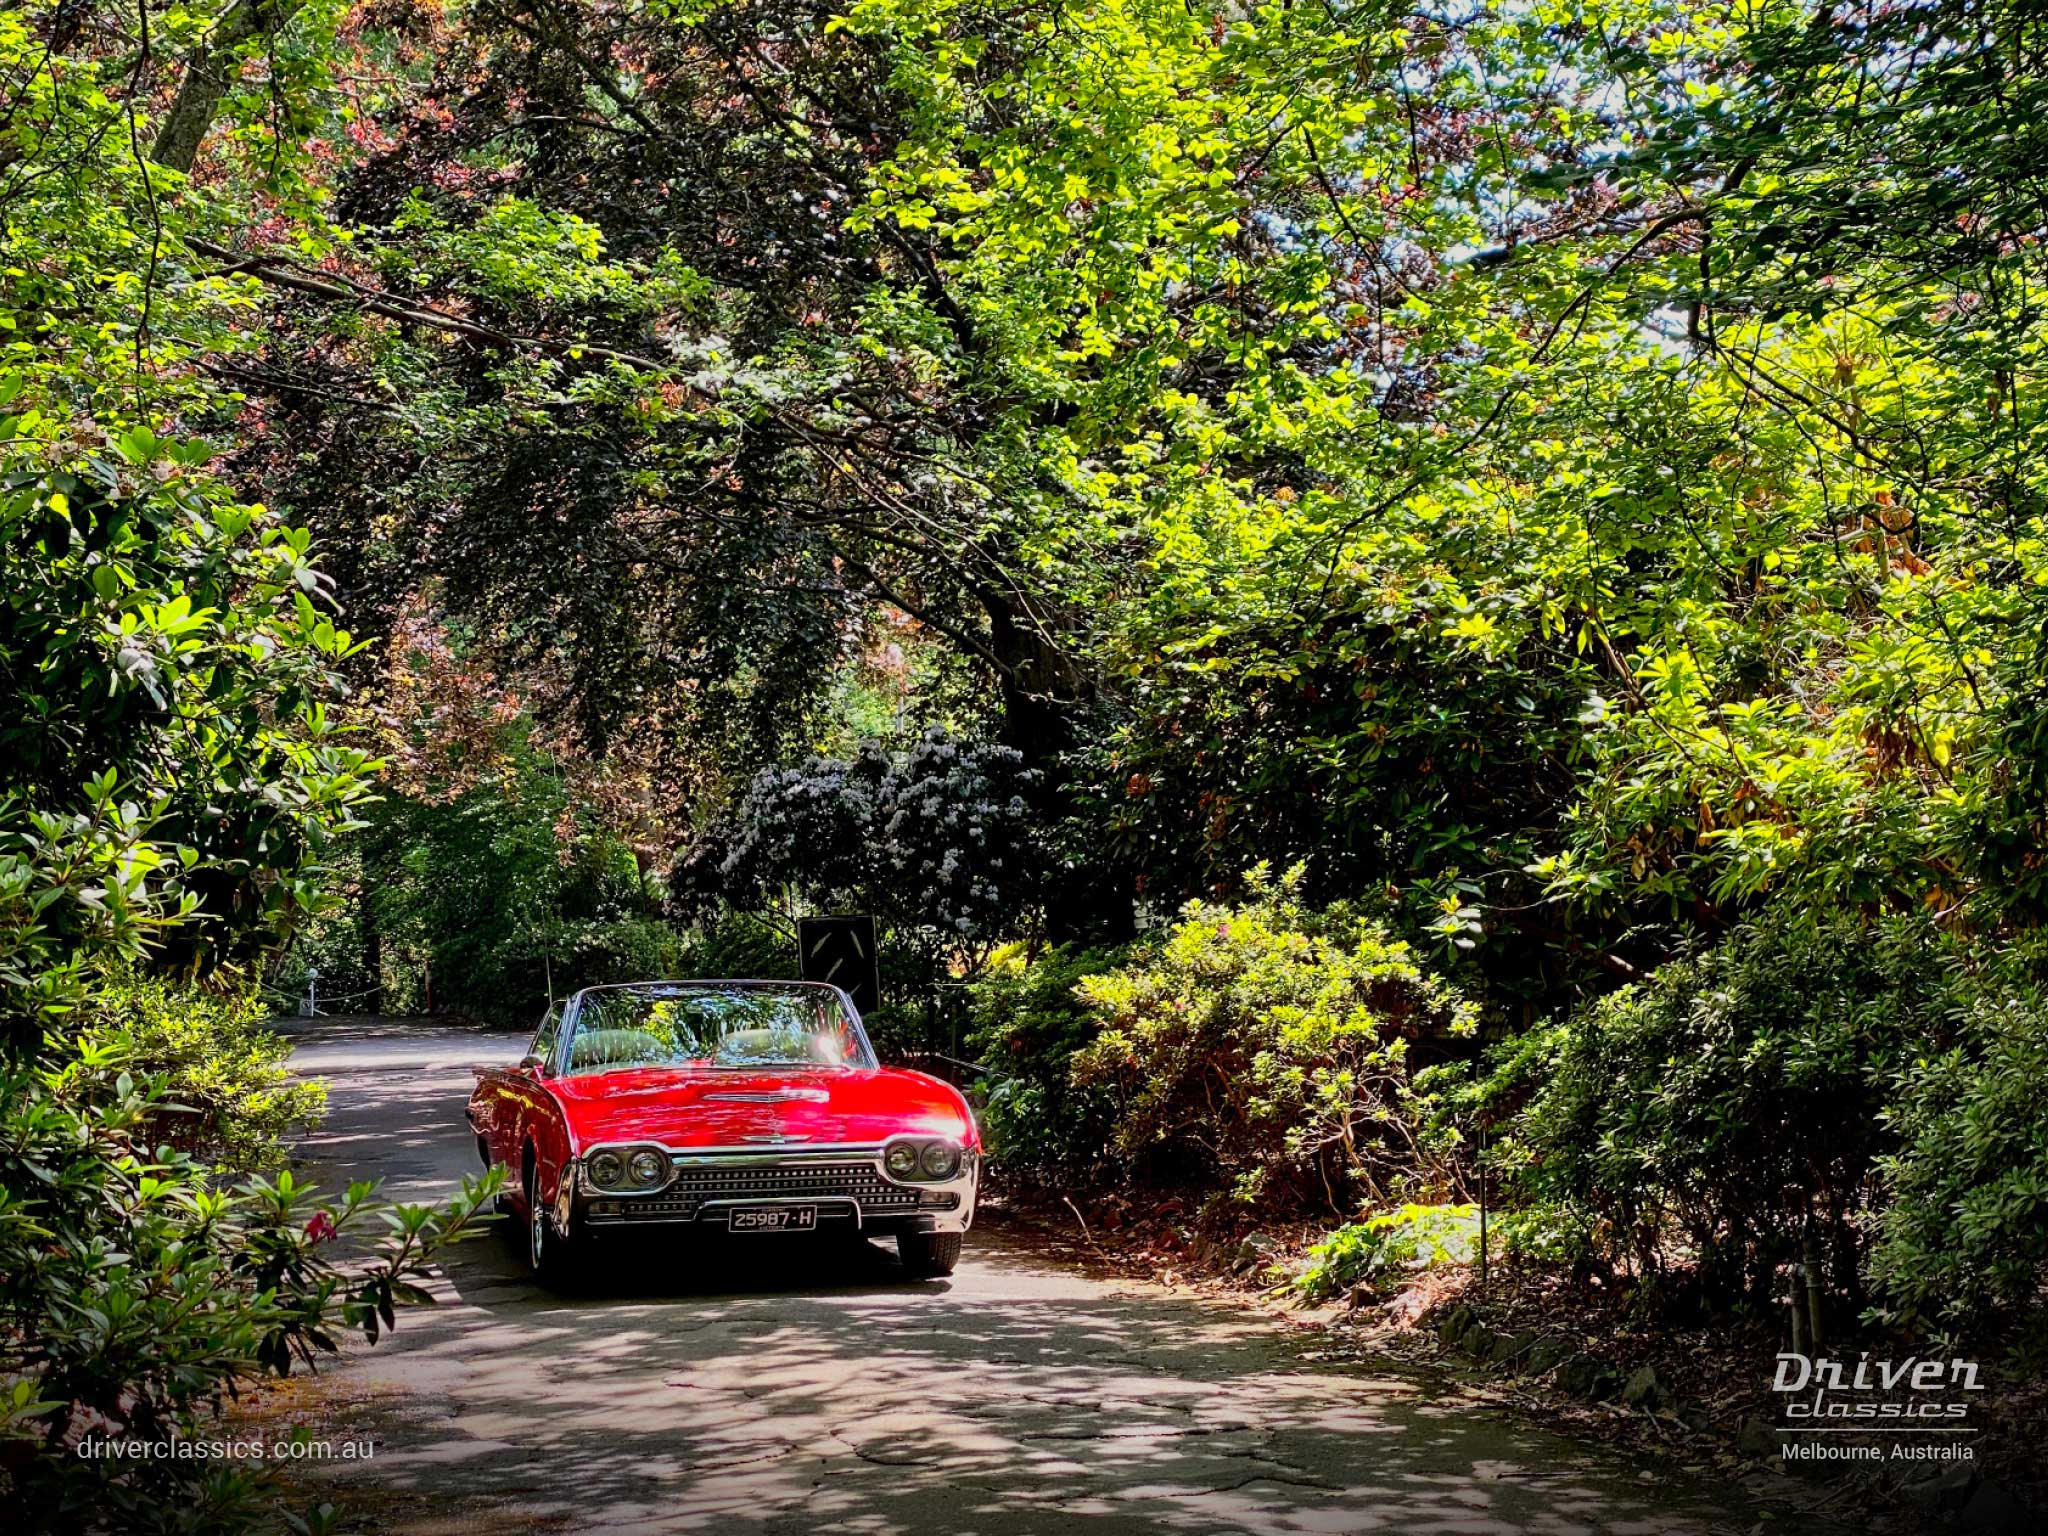 Ford Thunderbird Roadster 1962 version, front, Dandenong Ranges Gardens, Photo taken Dec 2019